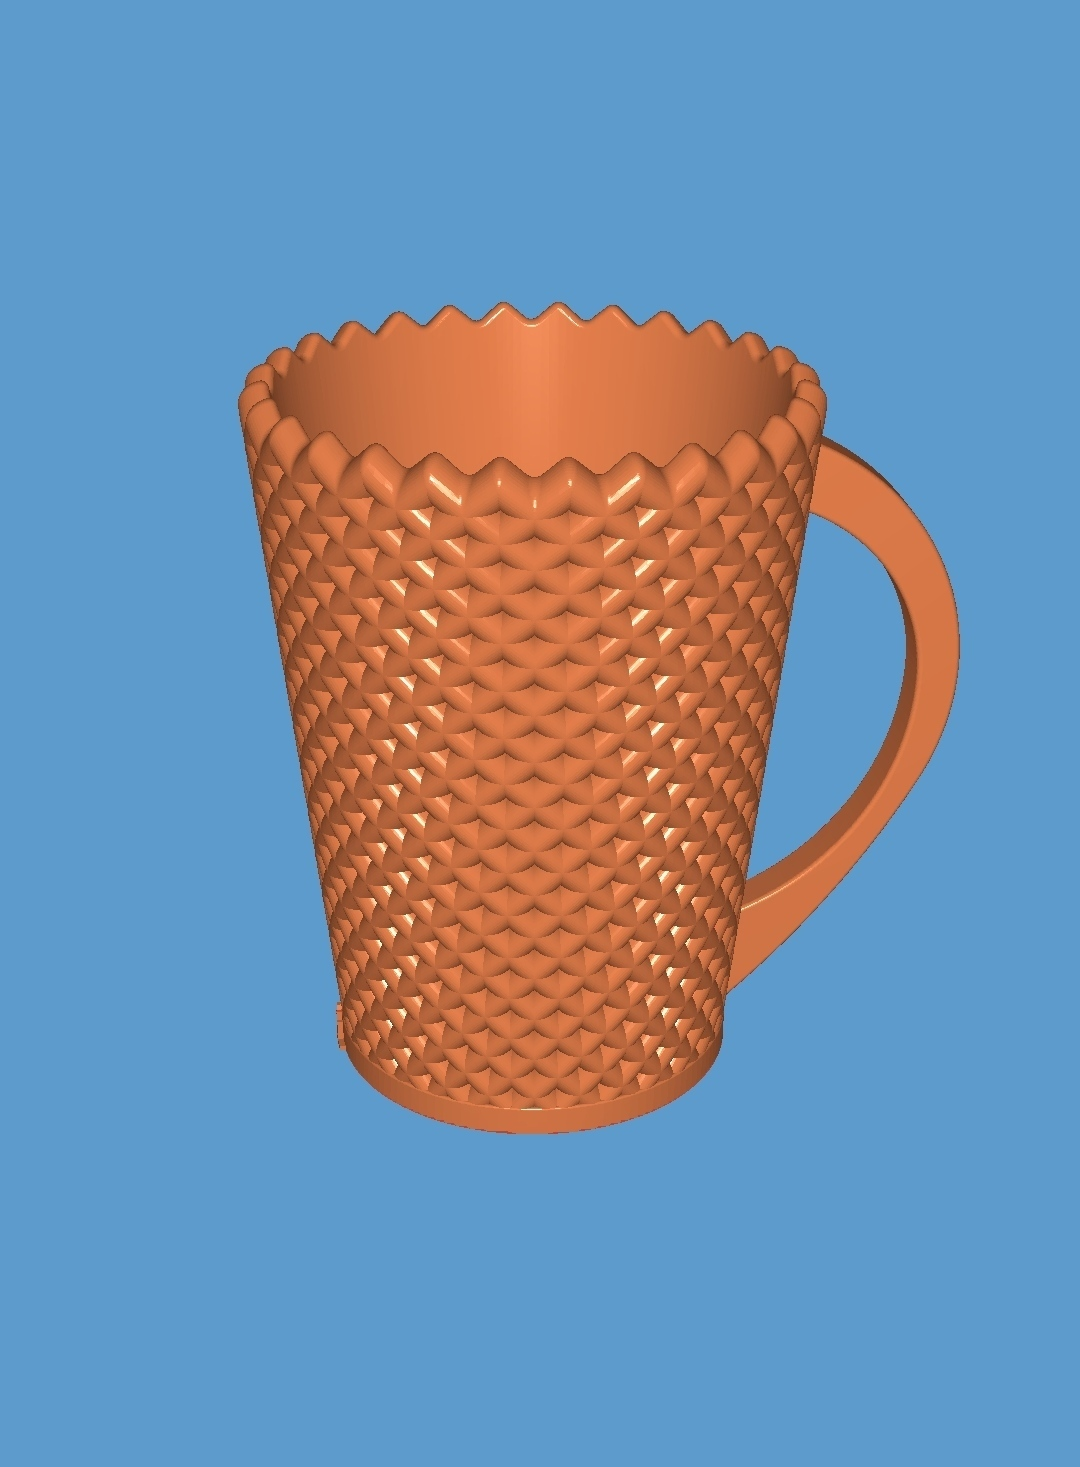 IMG_20200705_155657.jpg Download free STL file CUP • 3D printing template, MLL